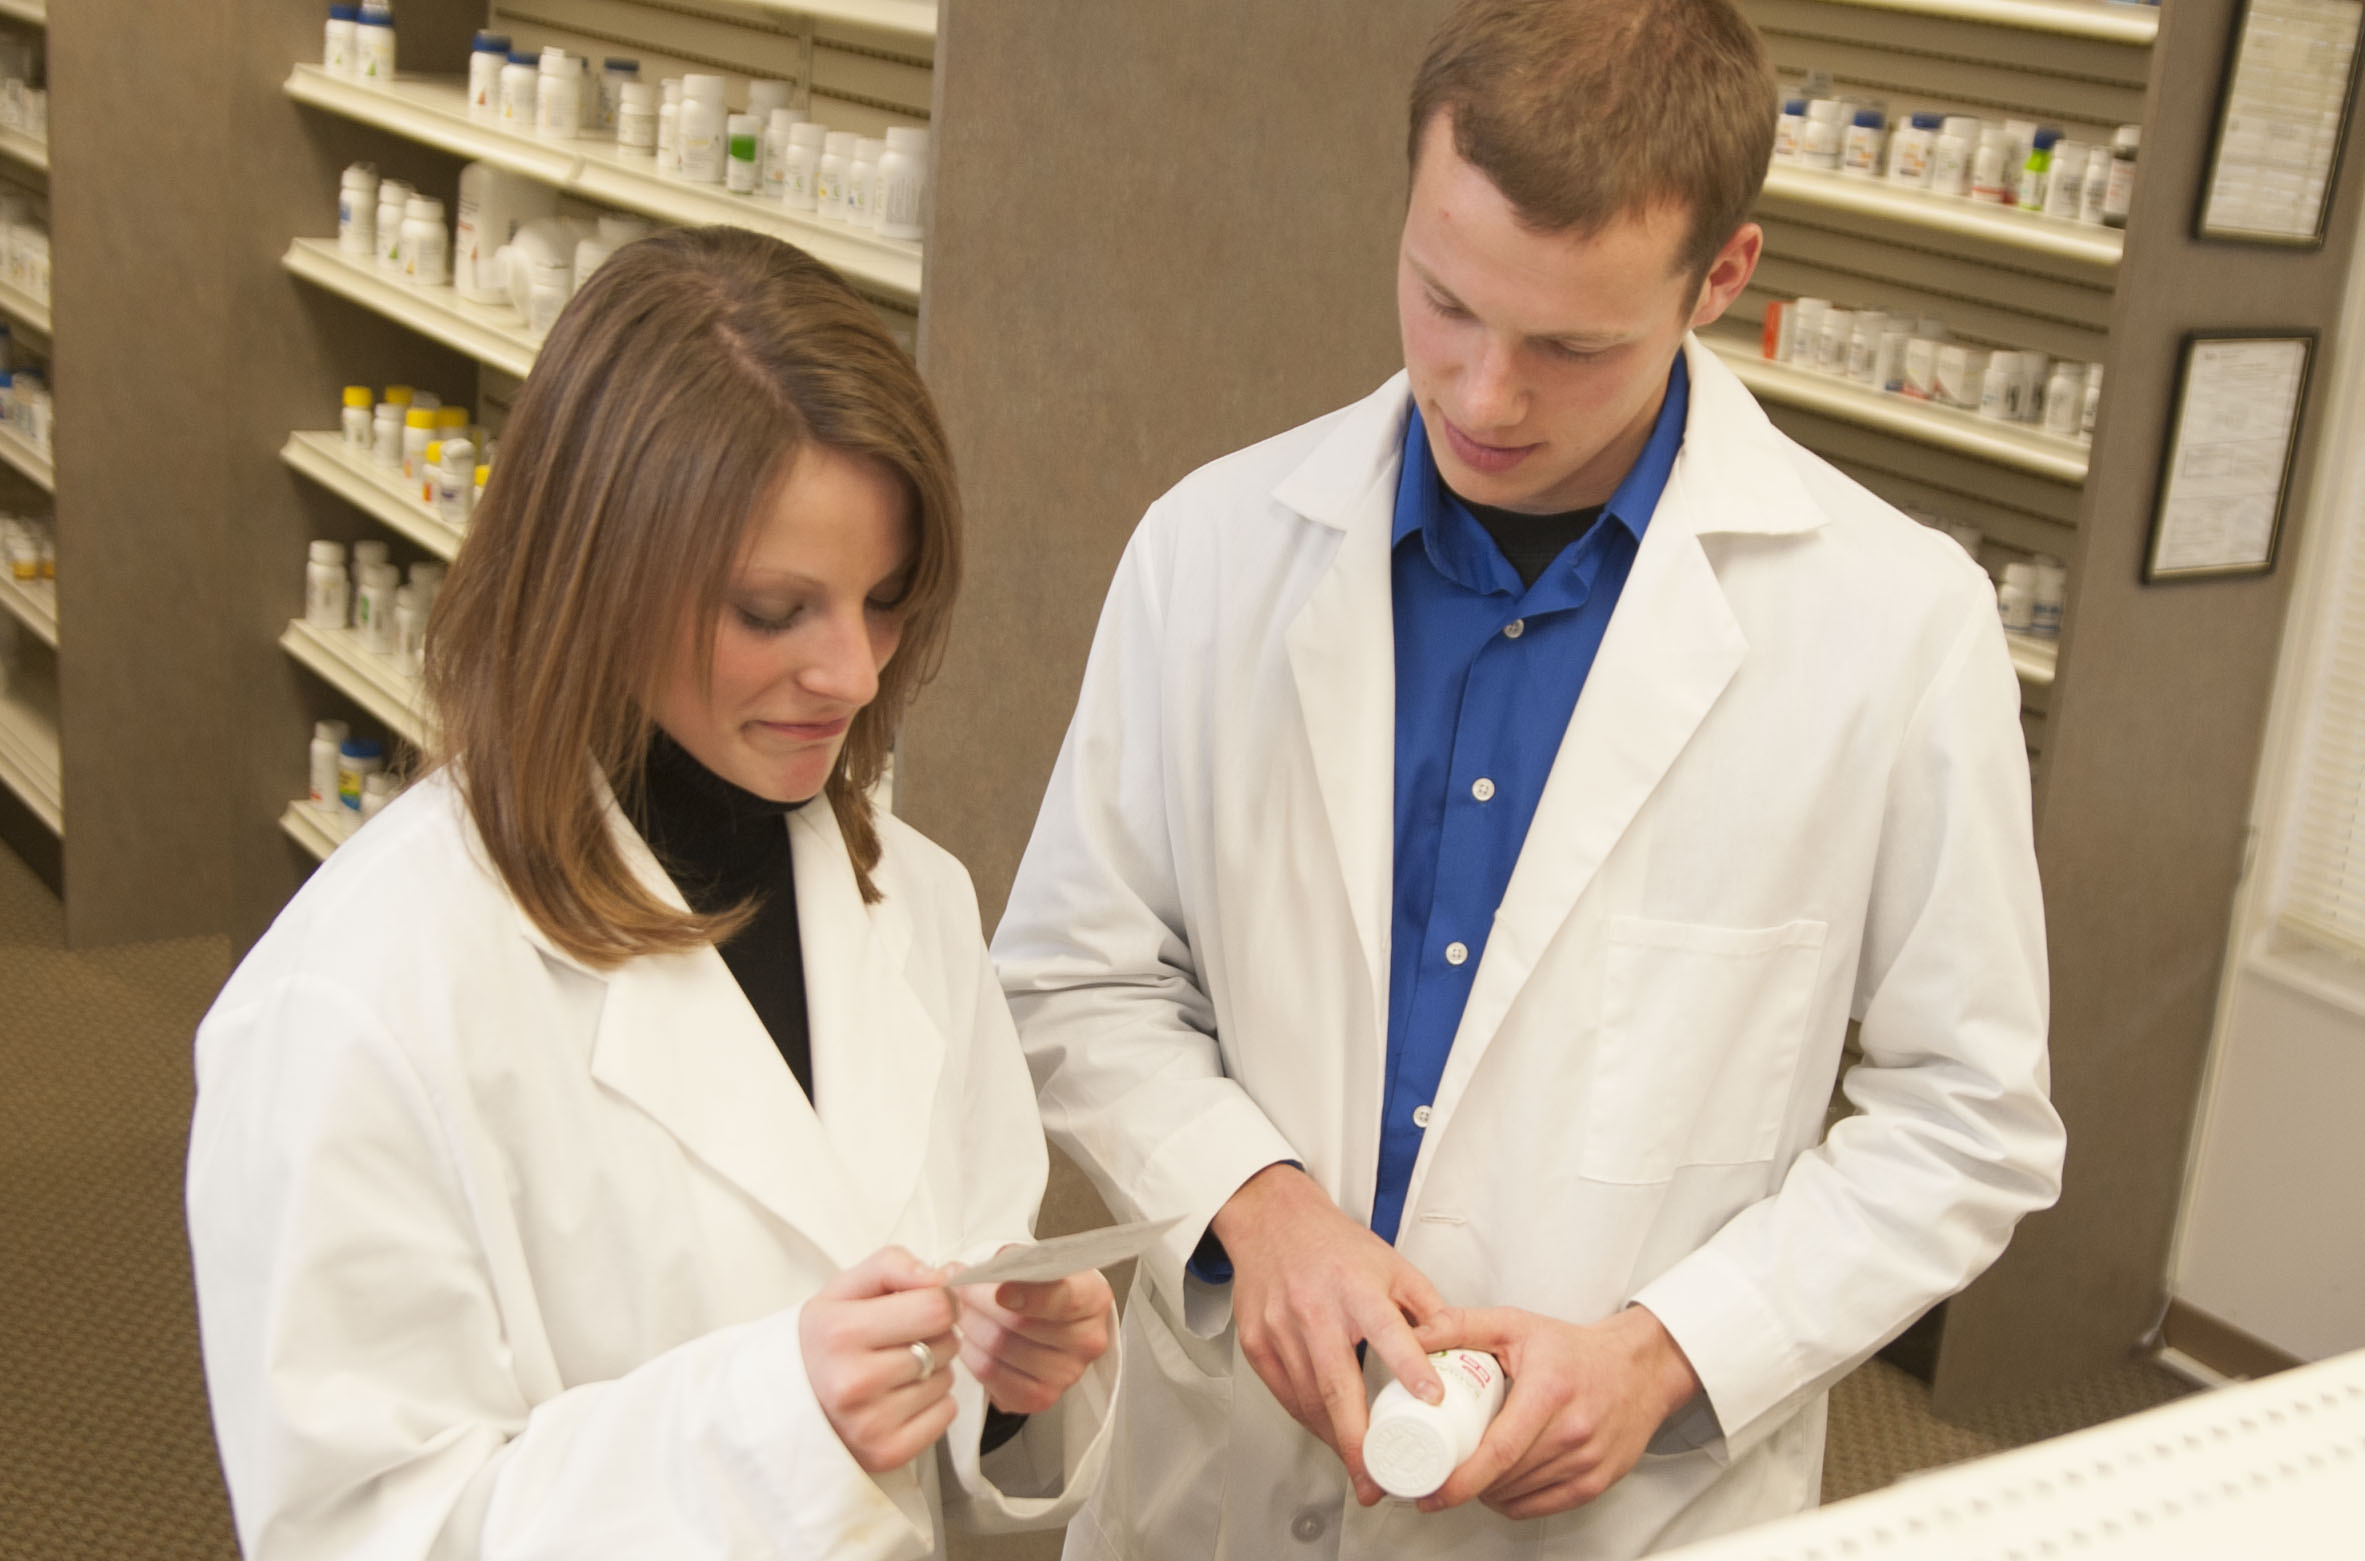 School of Pharmacy to launch prescription drug abuse educational program